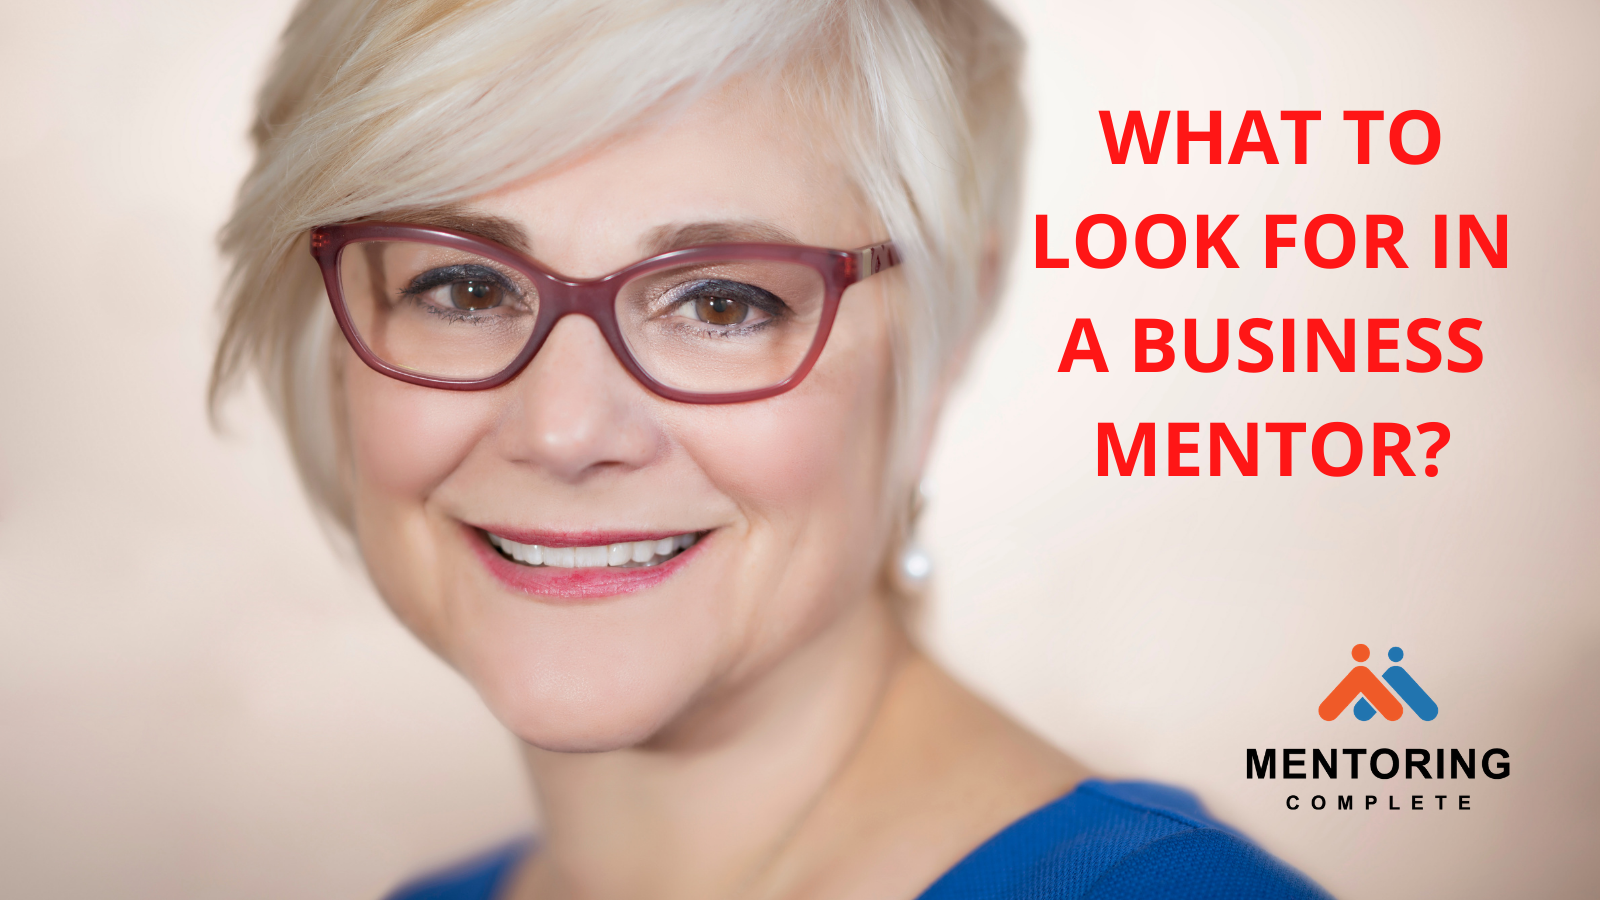 What to look for in a business mentor